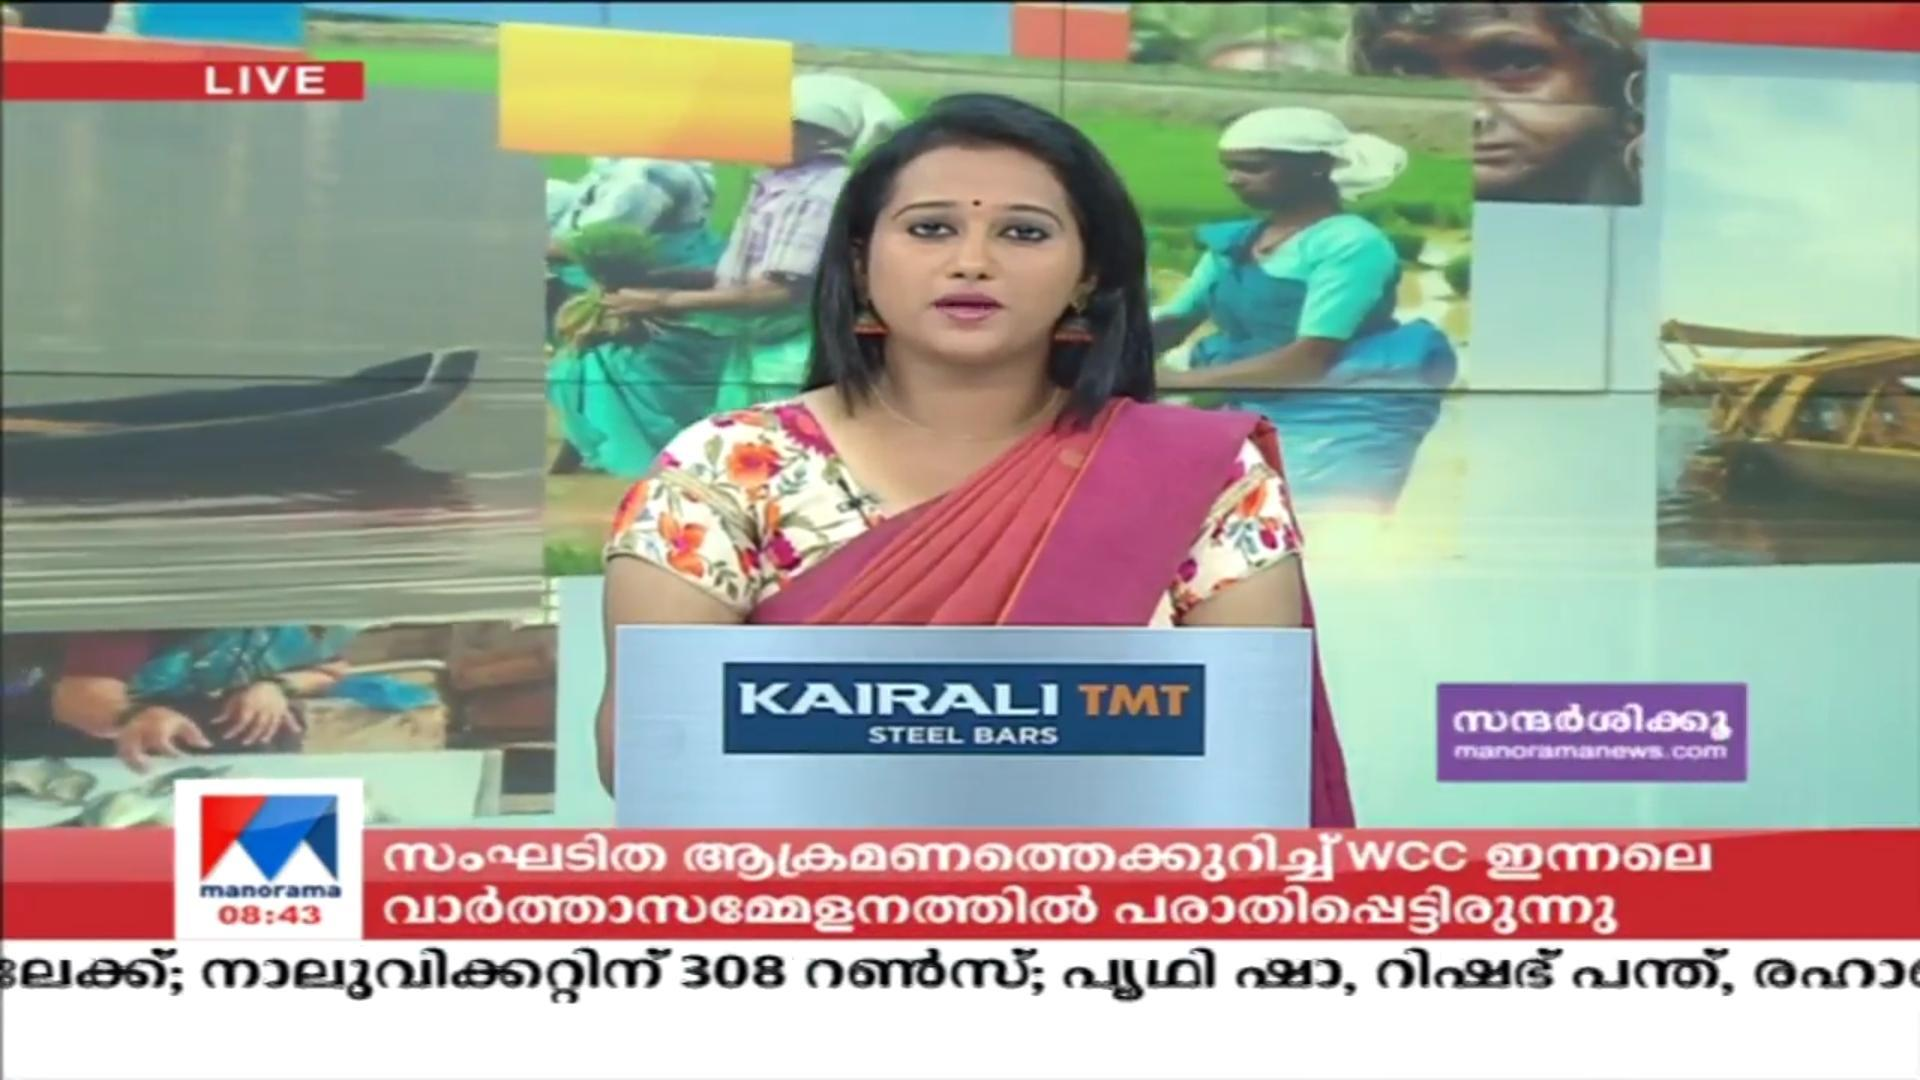 MANORAMA,MEDIA1,NEWS18,MATHRUBHUMI,ASIANET,KAIRALI for